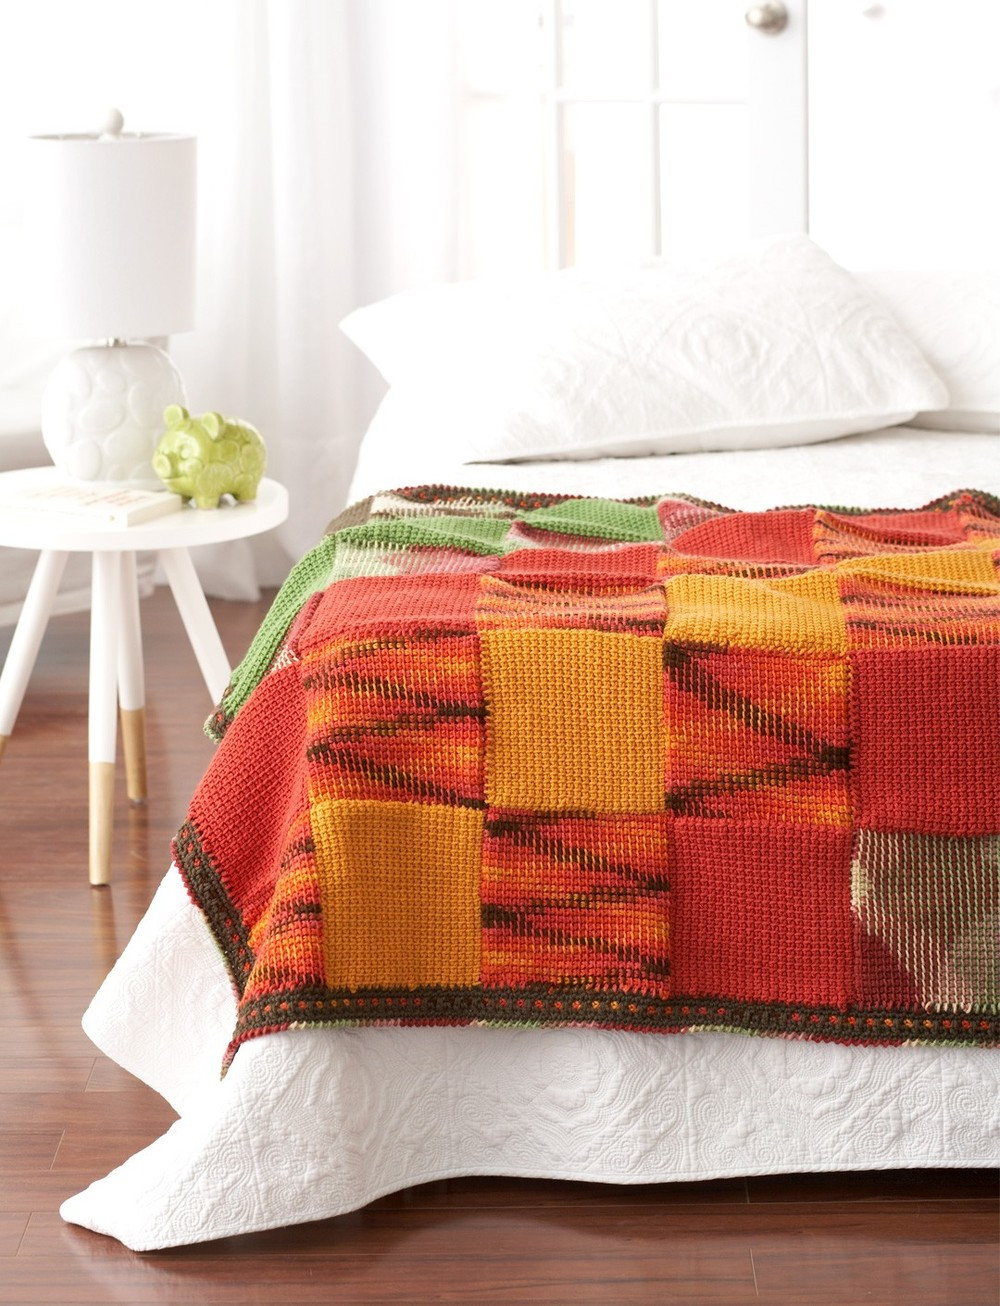 Best Of Shades Of Amber Tunisian Afghan Crochet Afghan Of Innovative 44 Ideas Crochet Afghan